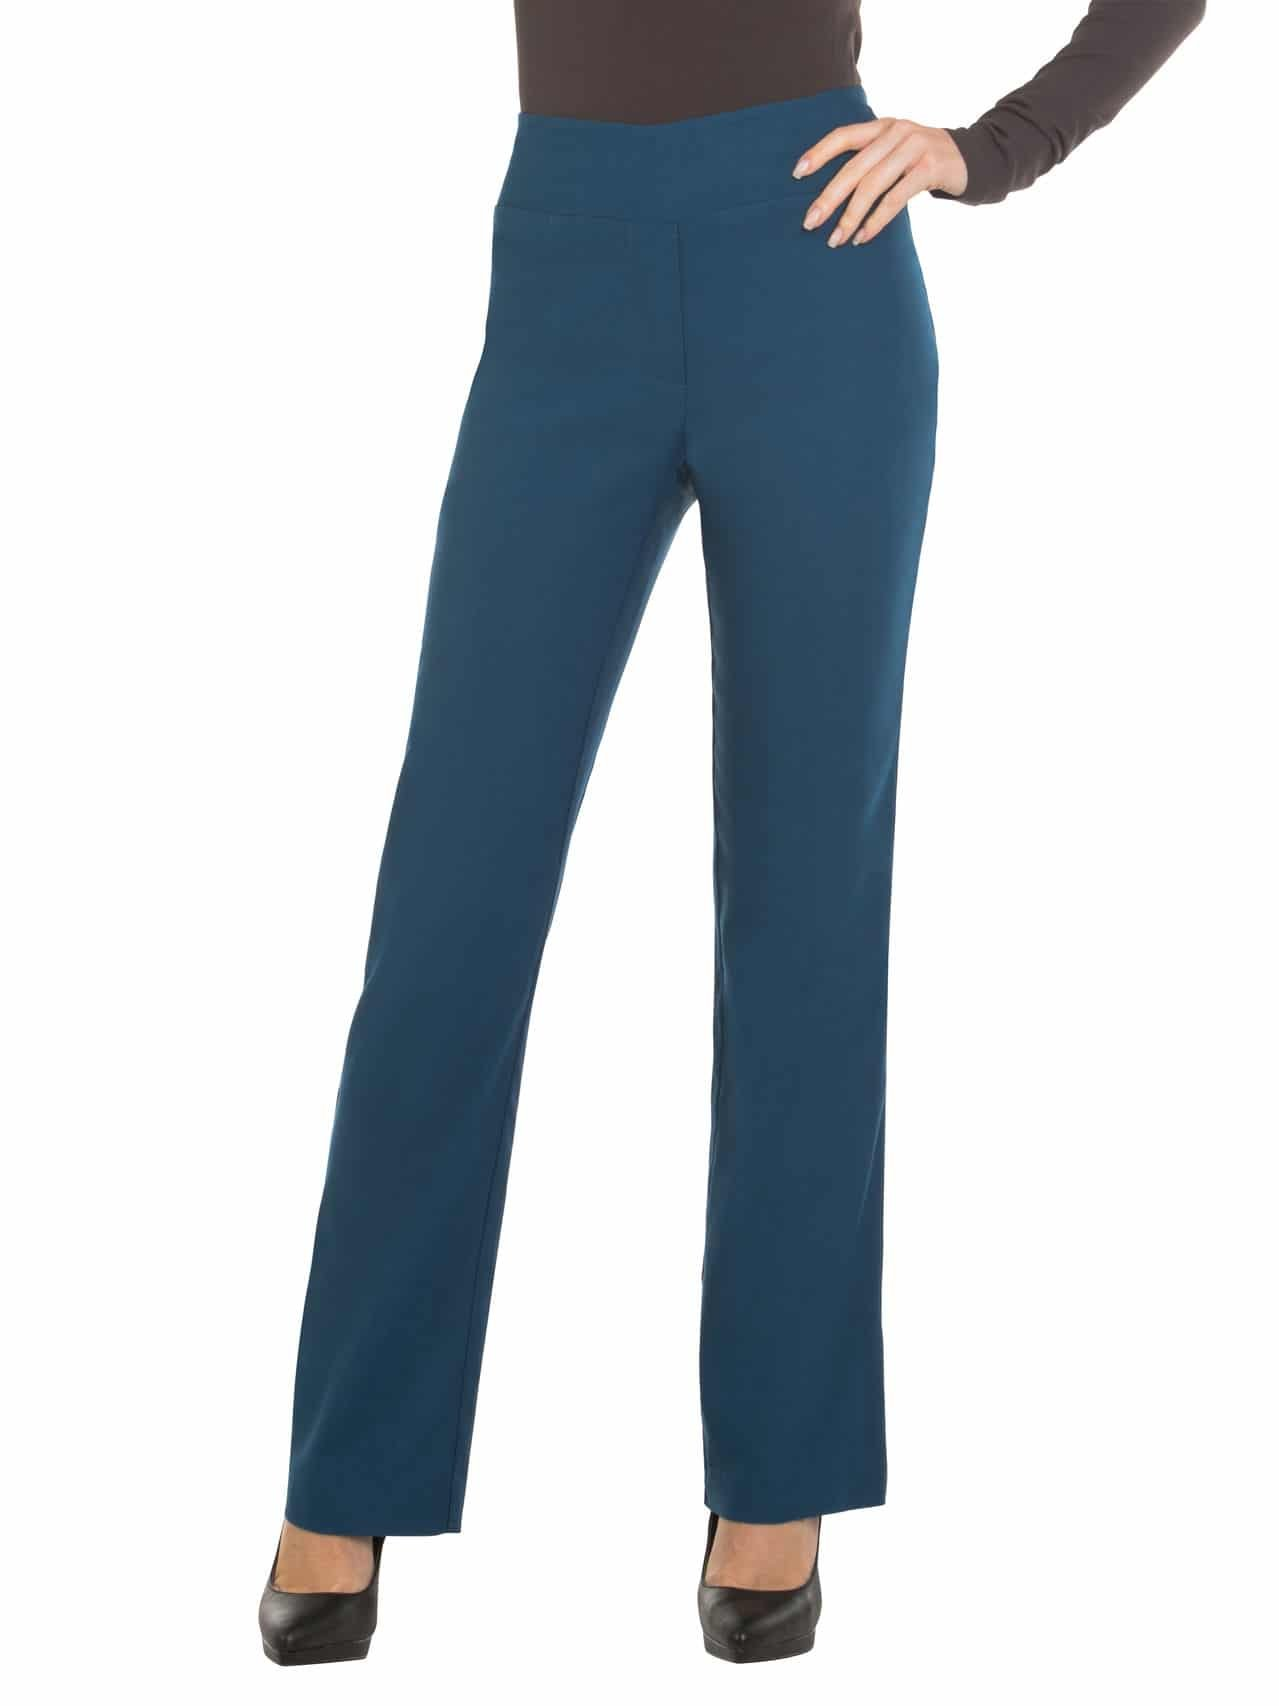 Red Hanger Bootcut Dress Pants for Women -Stretch Comfy Work Pull on Womens Pant Teal-M